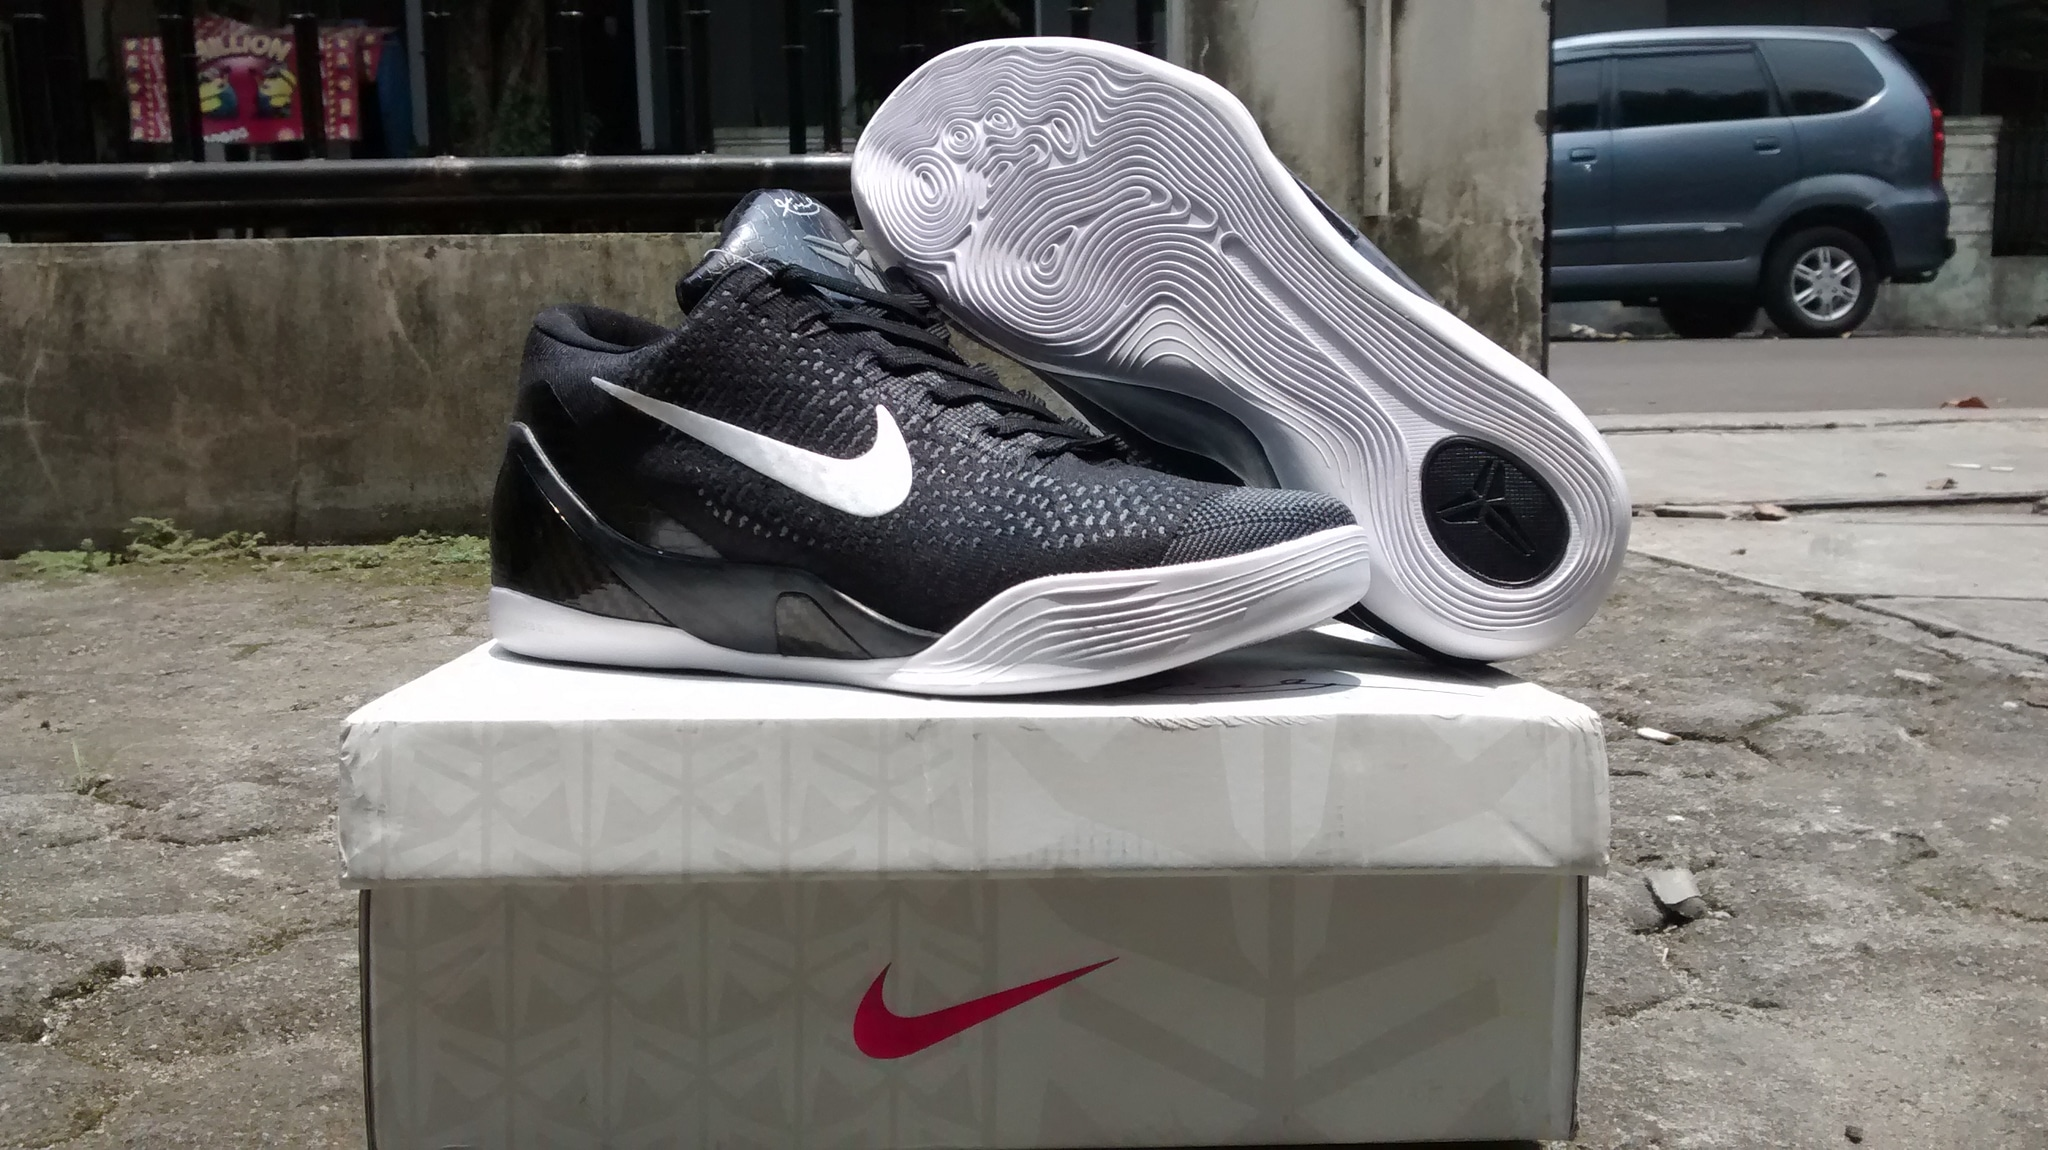 outlet store 00fa4 f67ad cheap jual sepatu basket kobe 9 elite flyknit low black cwpstore tokopedia  0cbdc 770a6